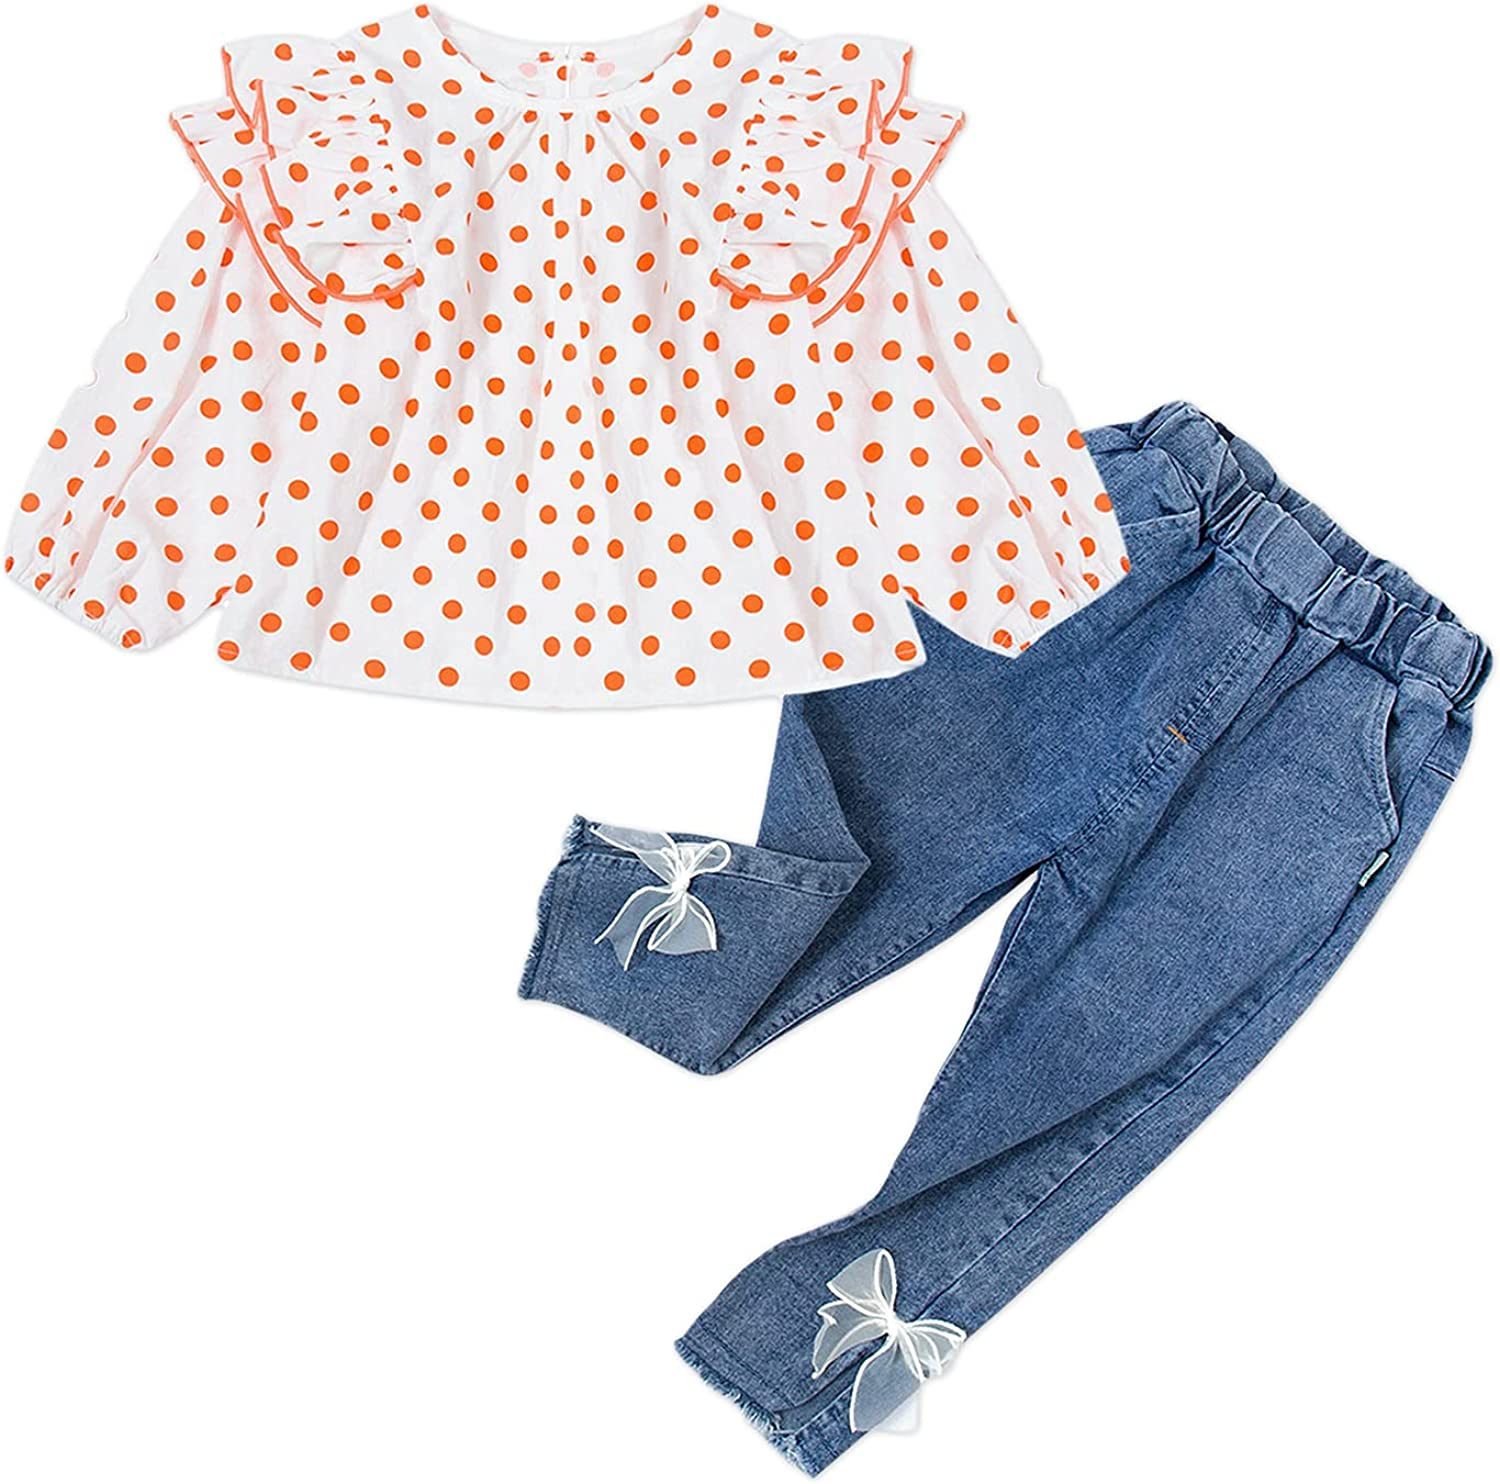 Fall Toddler Baby Girl Clothes Size 9M-5T long Sleeve Tops Coat + Denim Pants Set Outfit